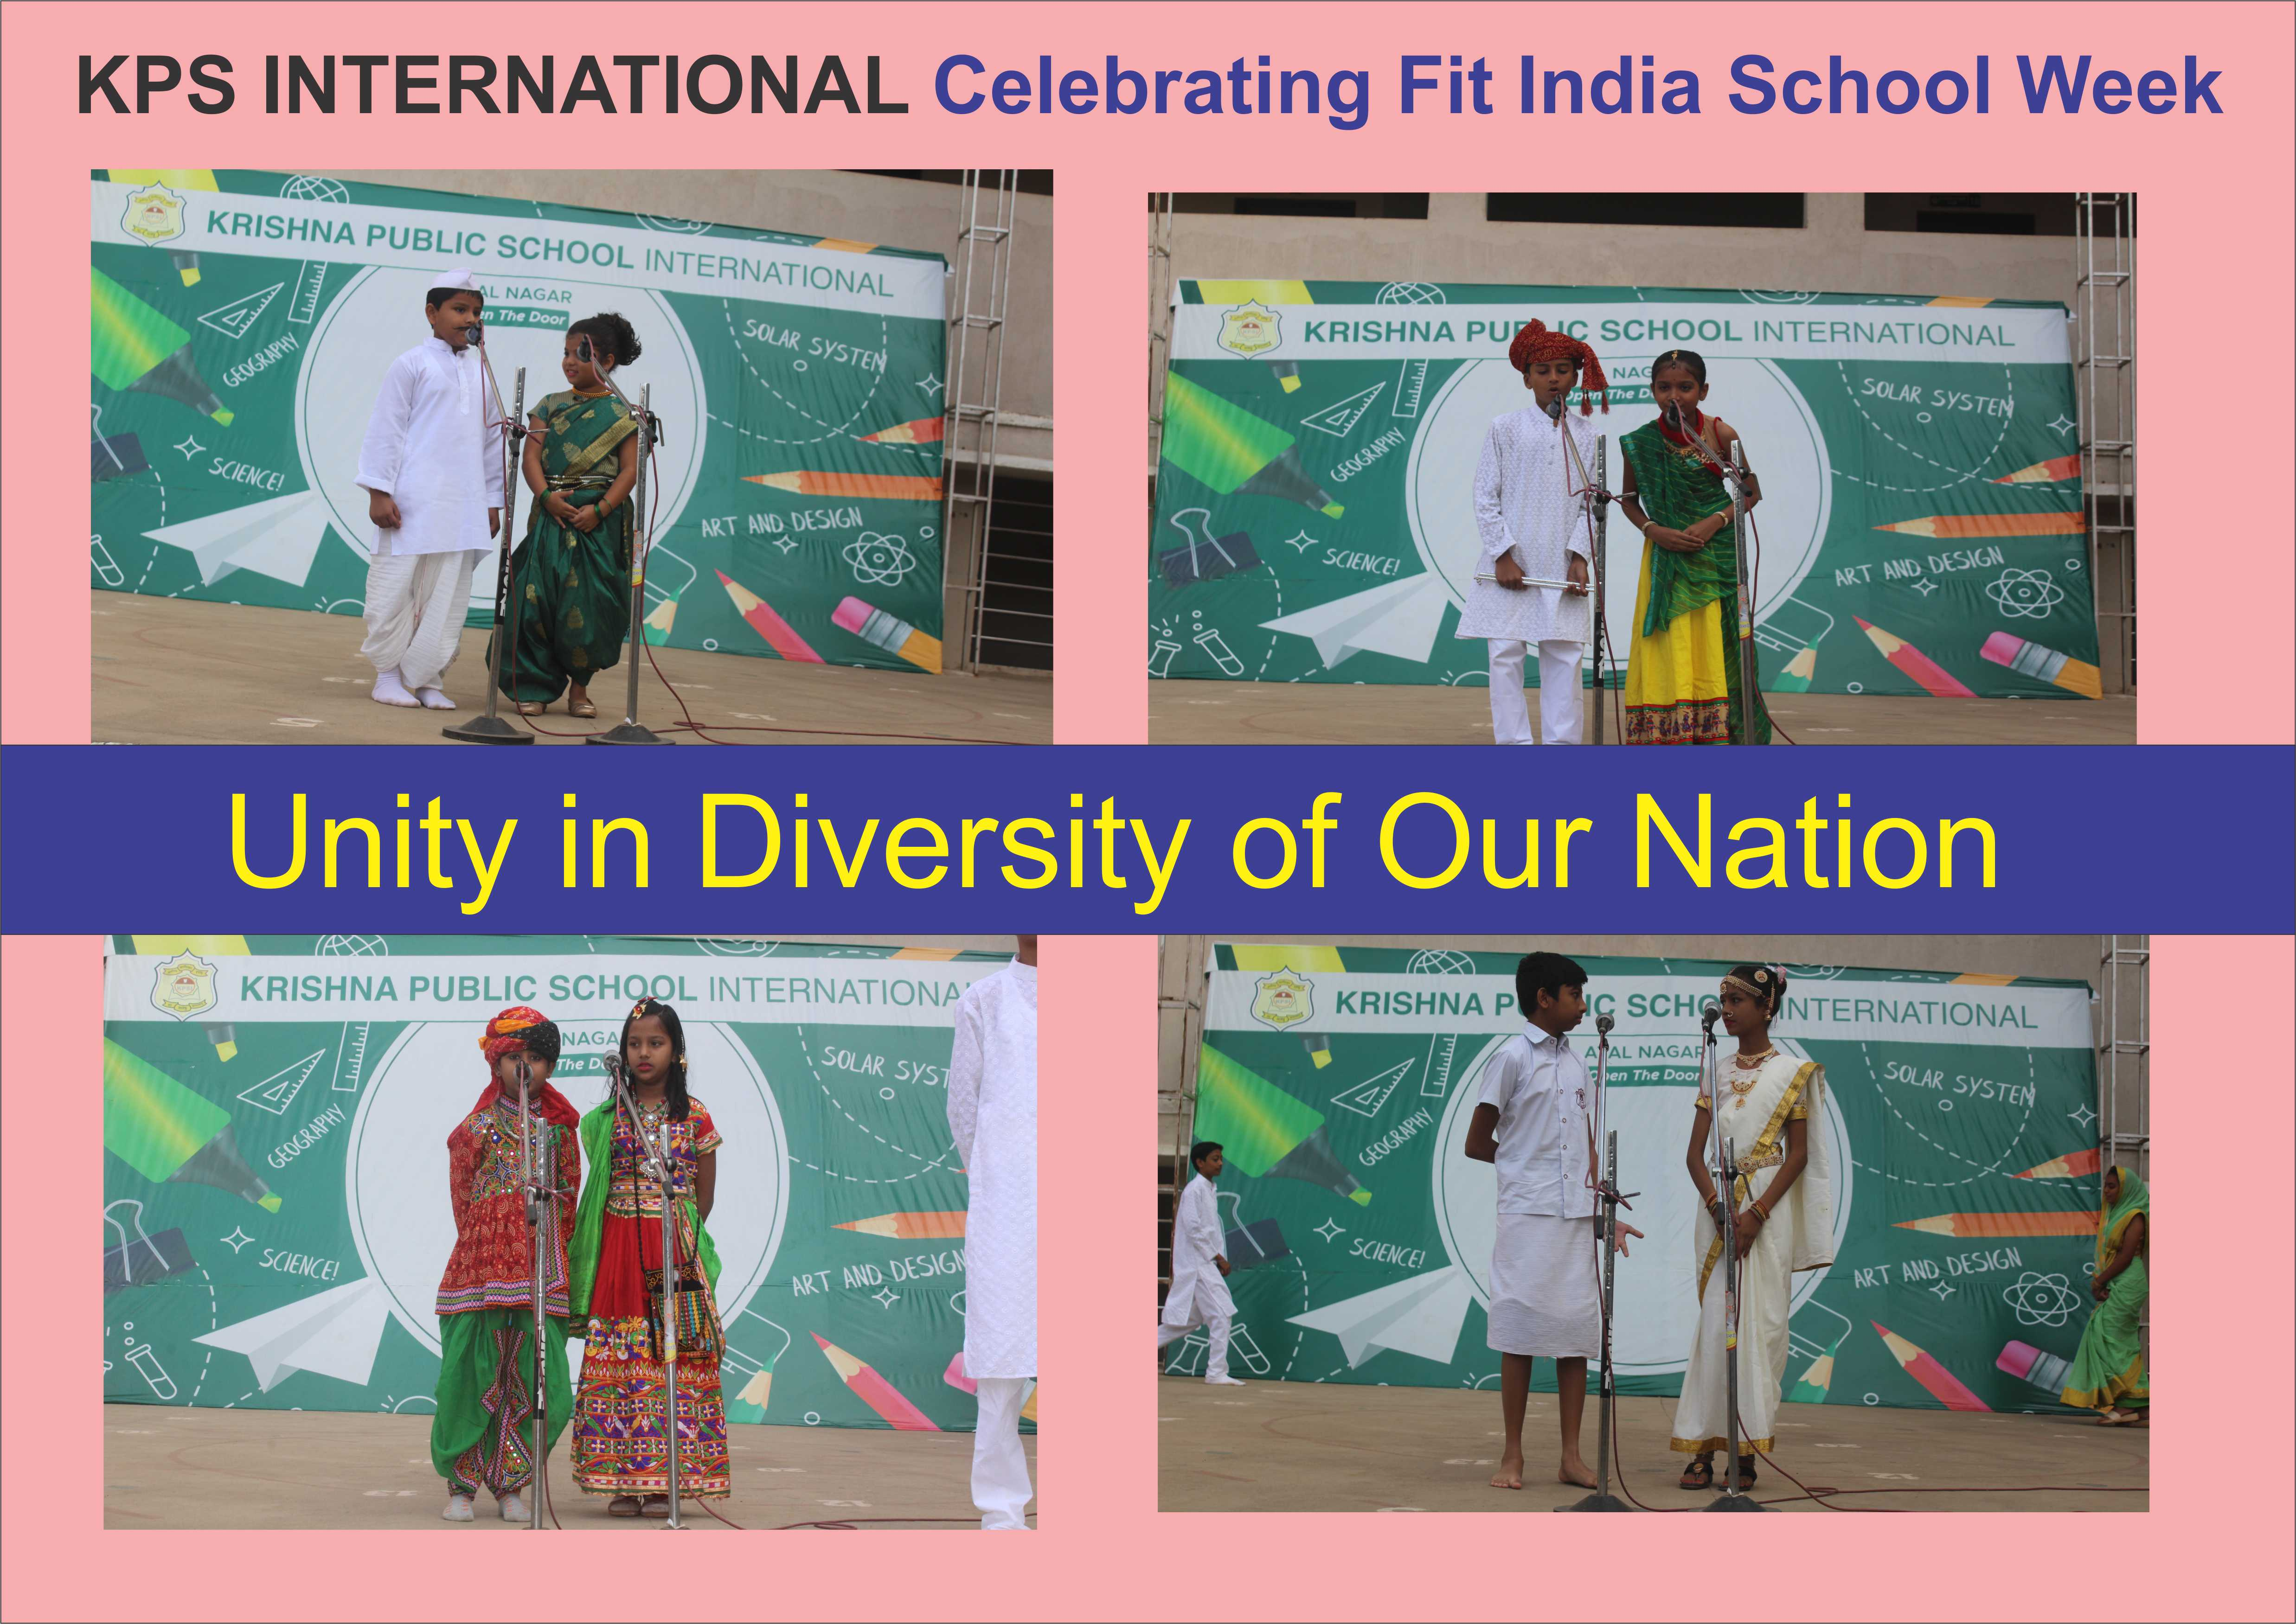 Unity in Diversity of our Nation